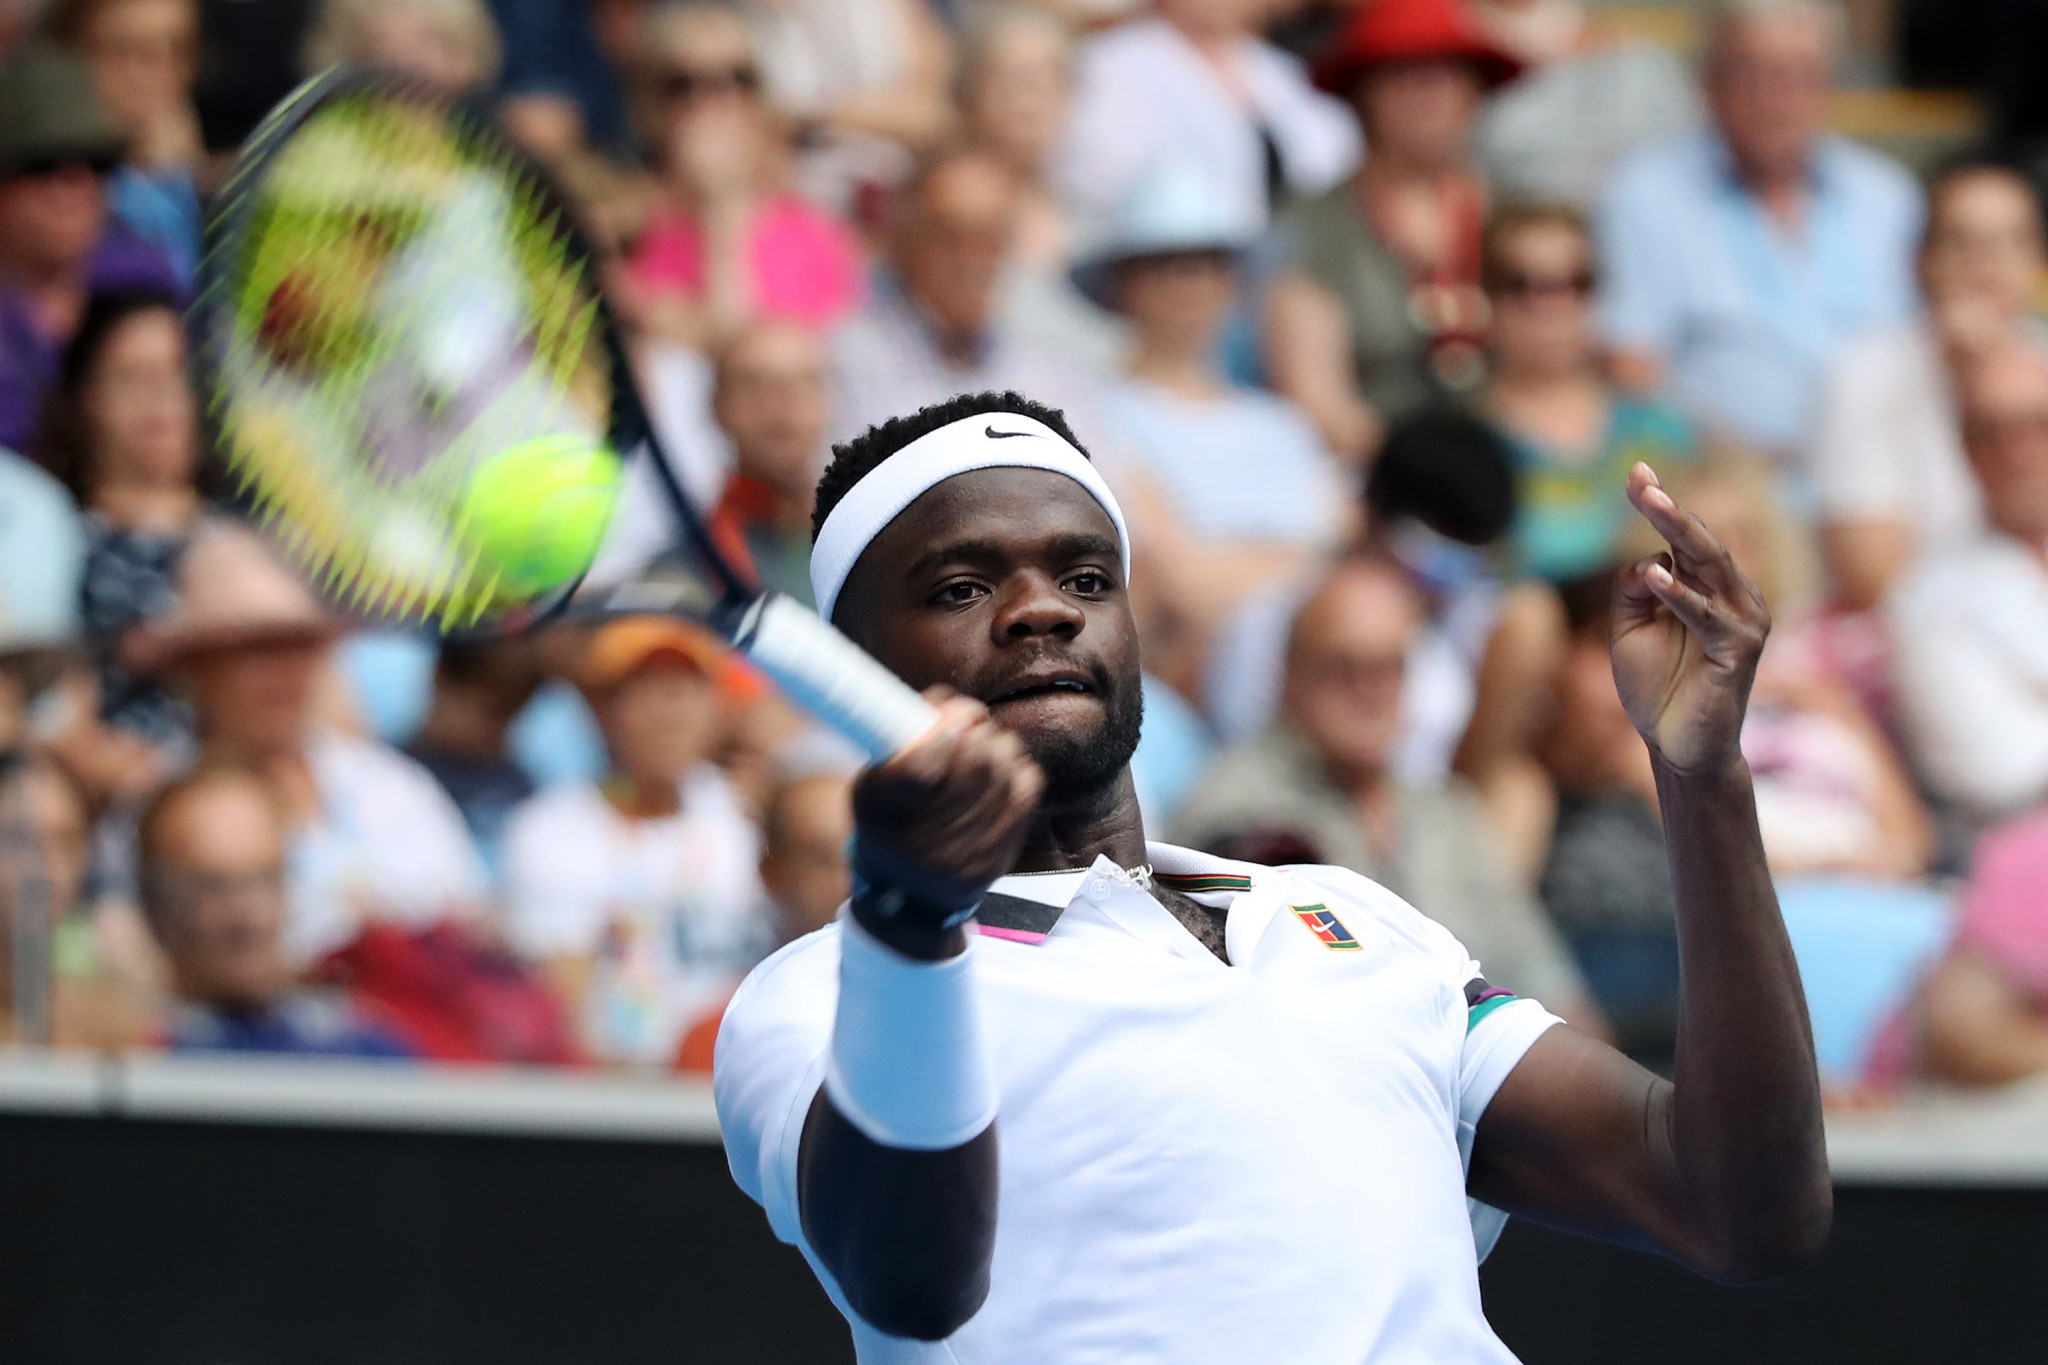 American Frances Tiafoe fought back from a set down to beat last year's Wimbledon finalist ©Getty Images